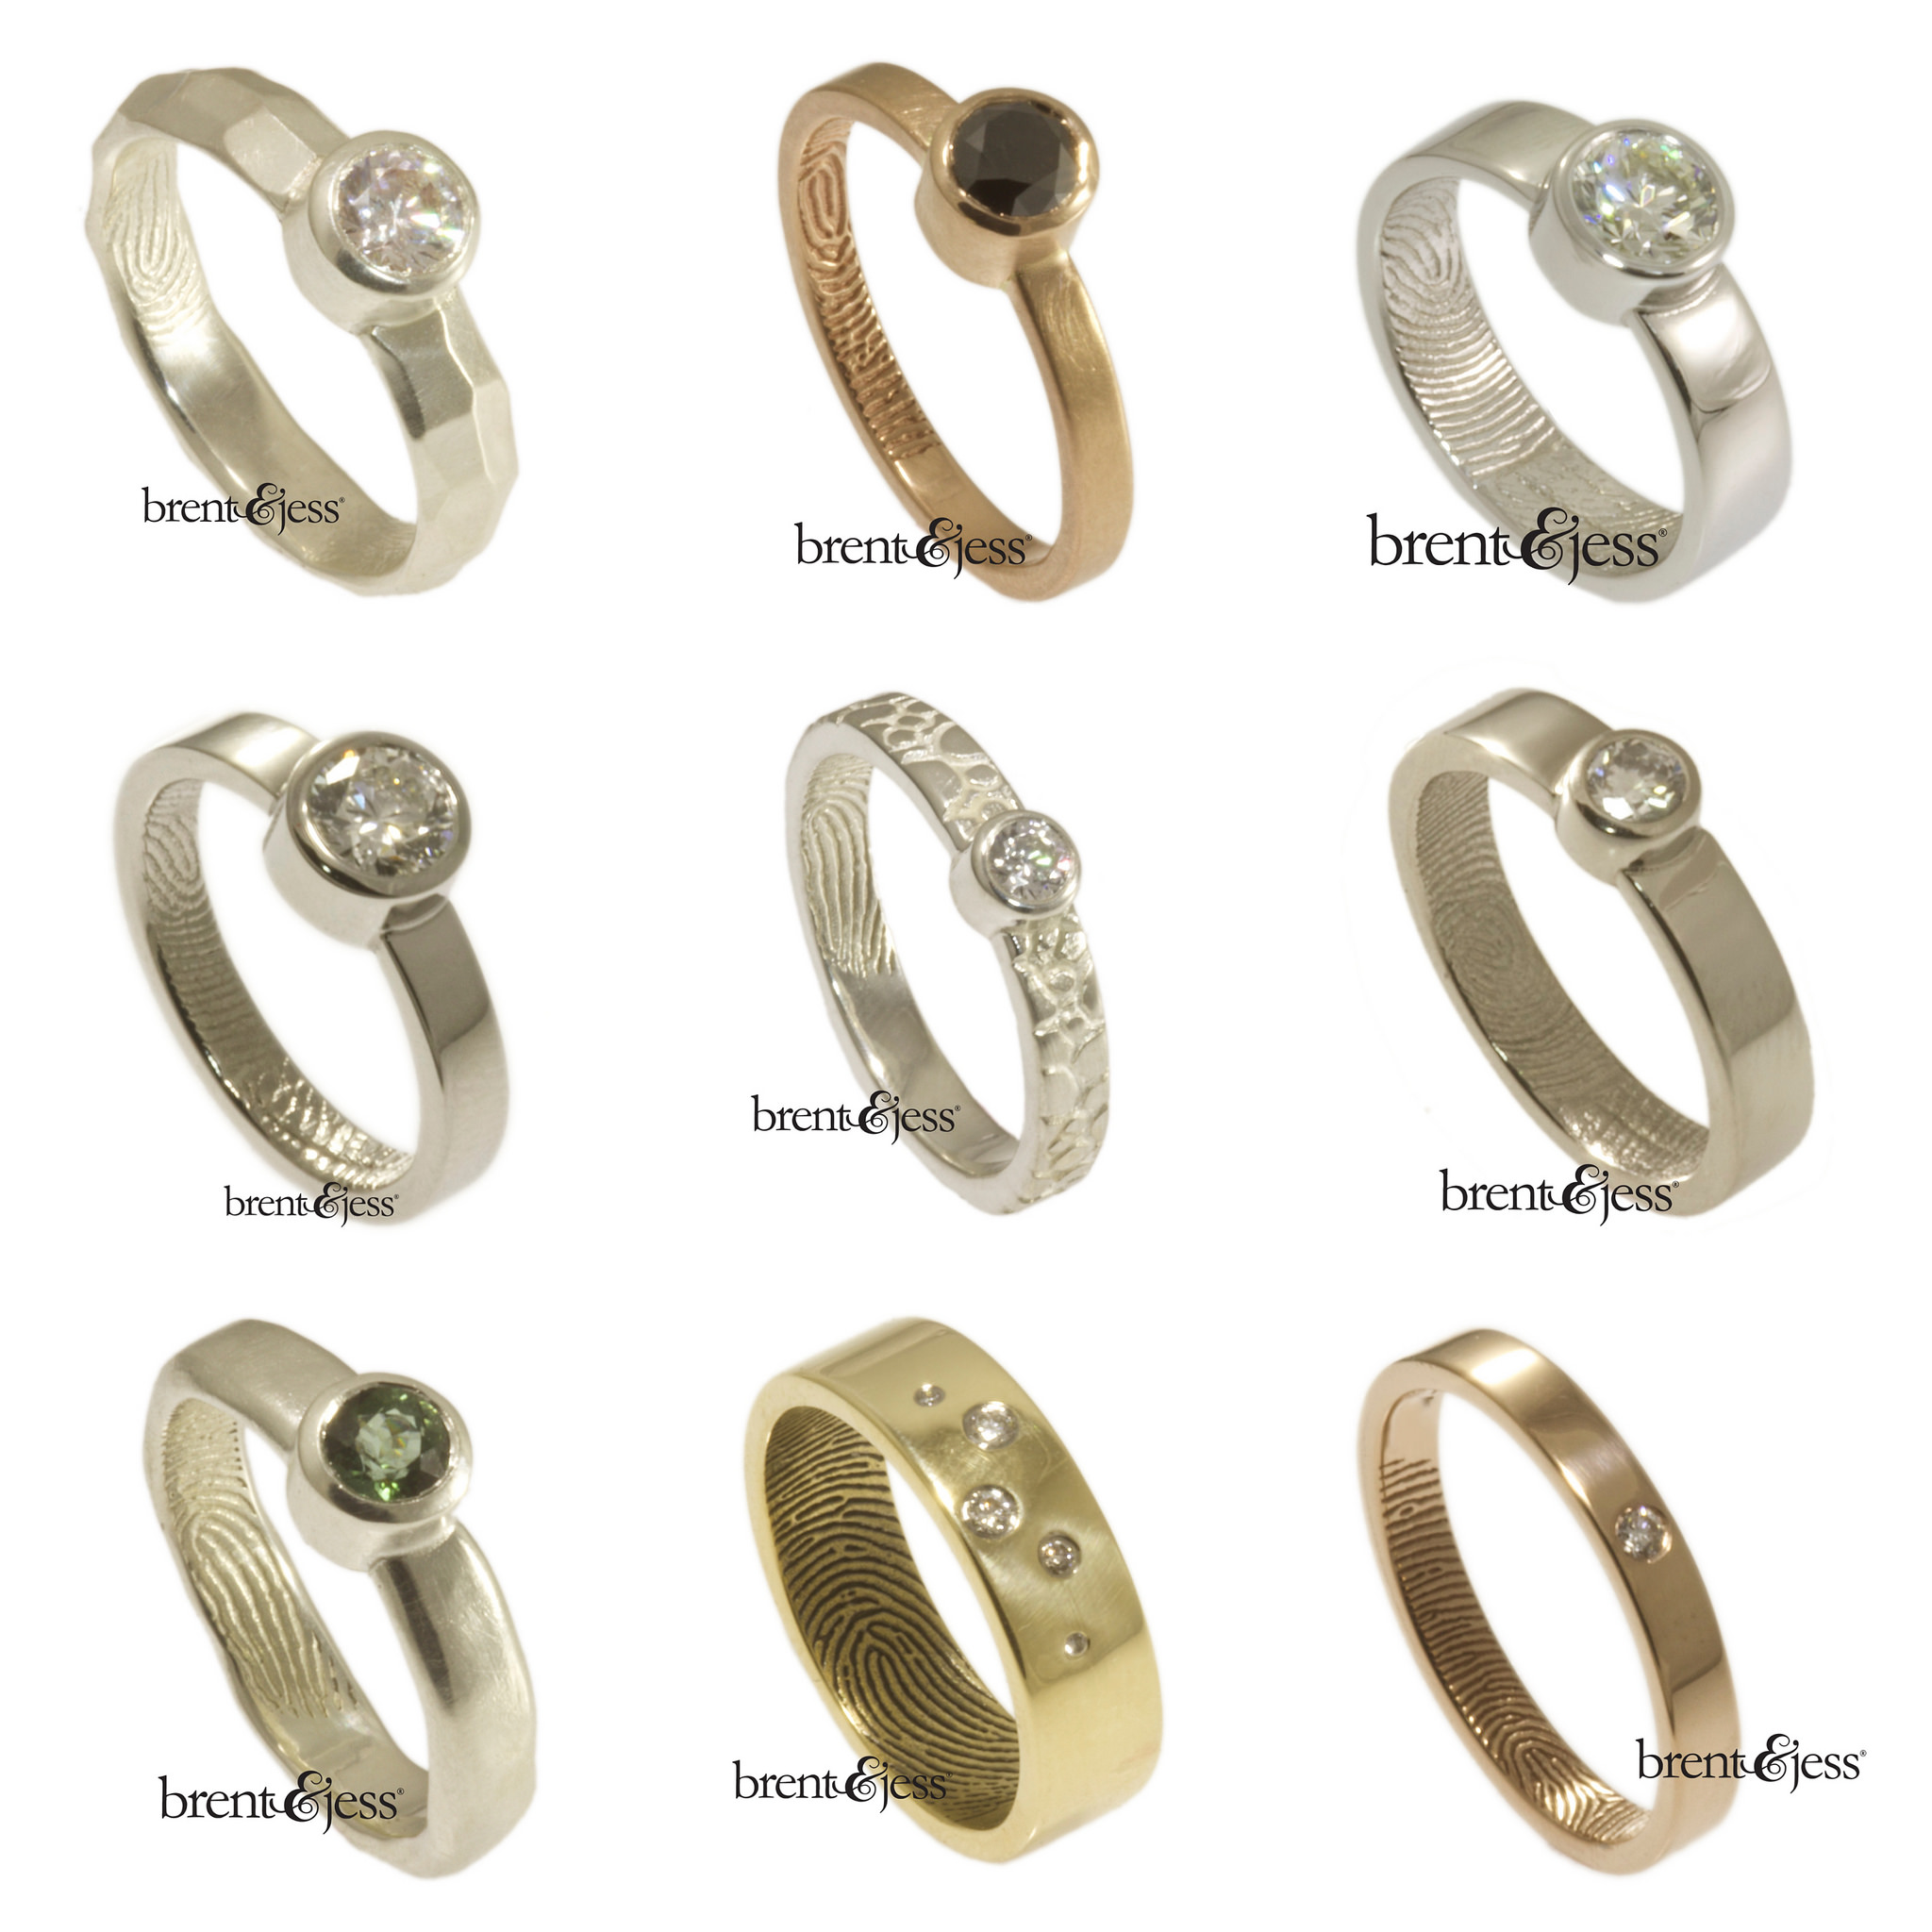 10 non traditional engagement rings for under 1k a practical wedding - Nontraditional Wedding Rings